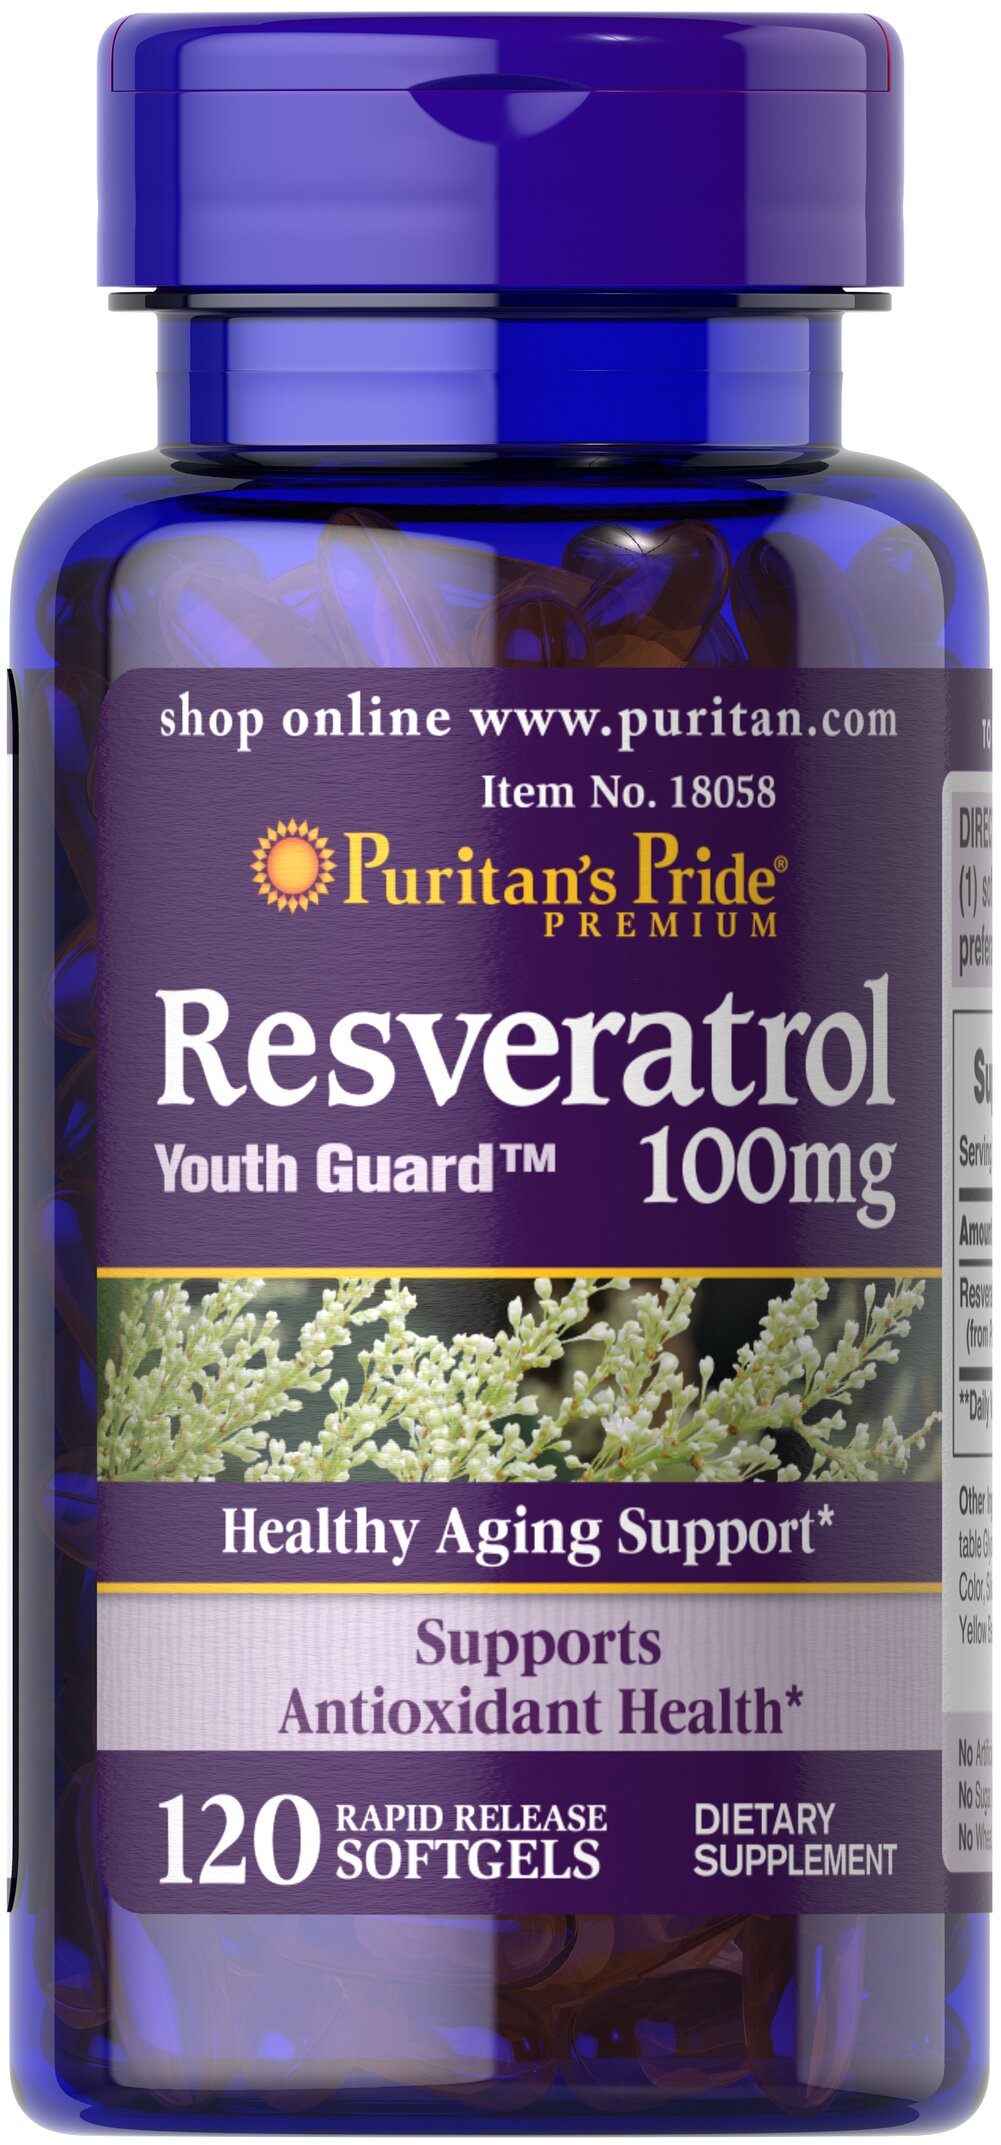 Resveratrol 100 mg Thumbnail Alternate Bottle View